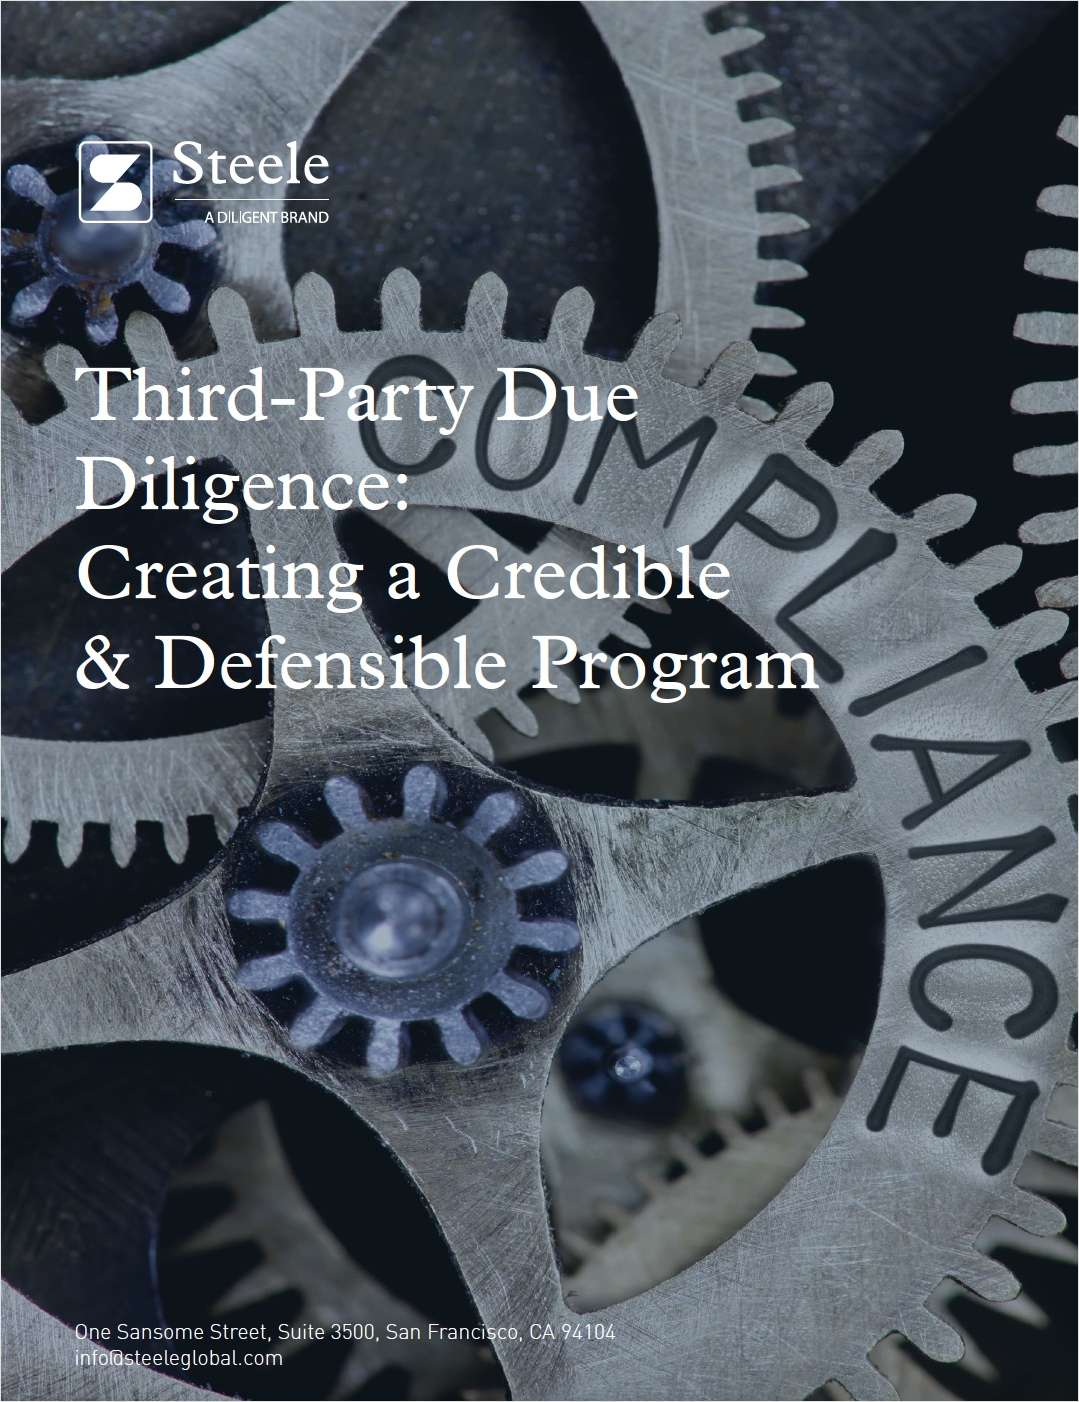 Third-Party Due Diligence: Creating a Credible & Defensible Program